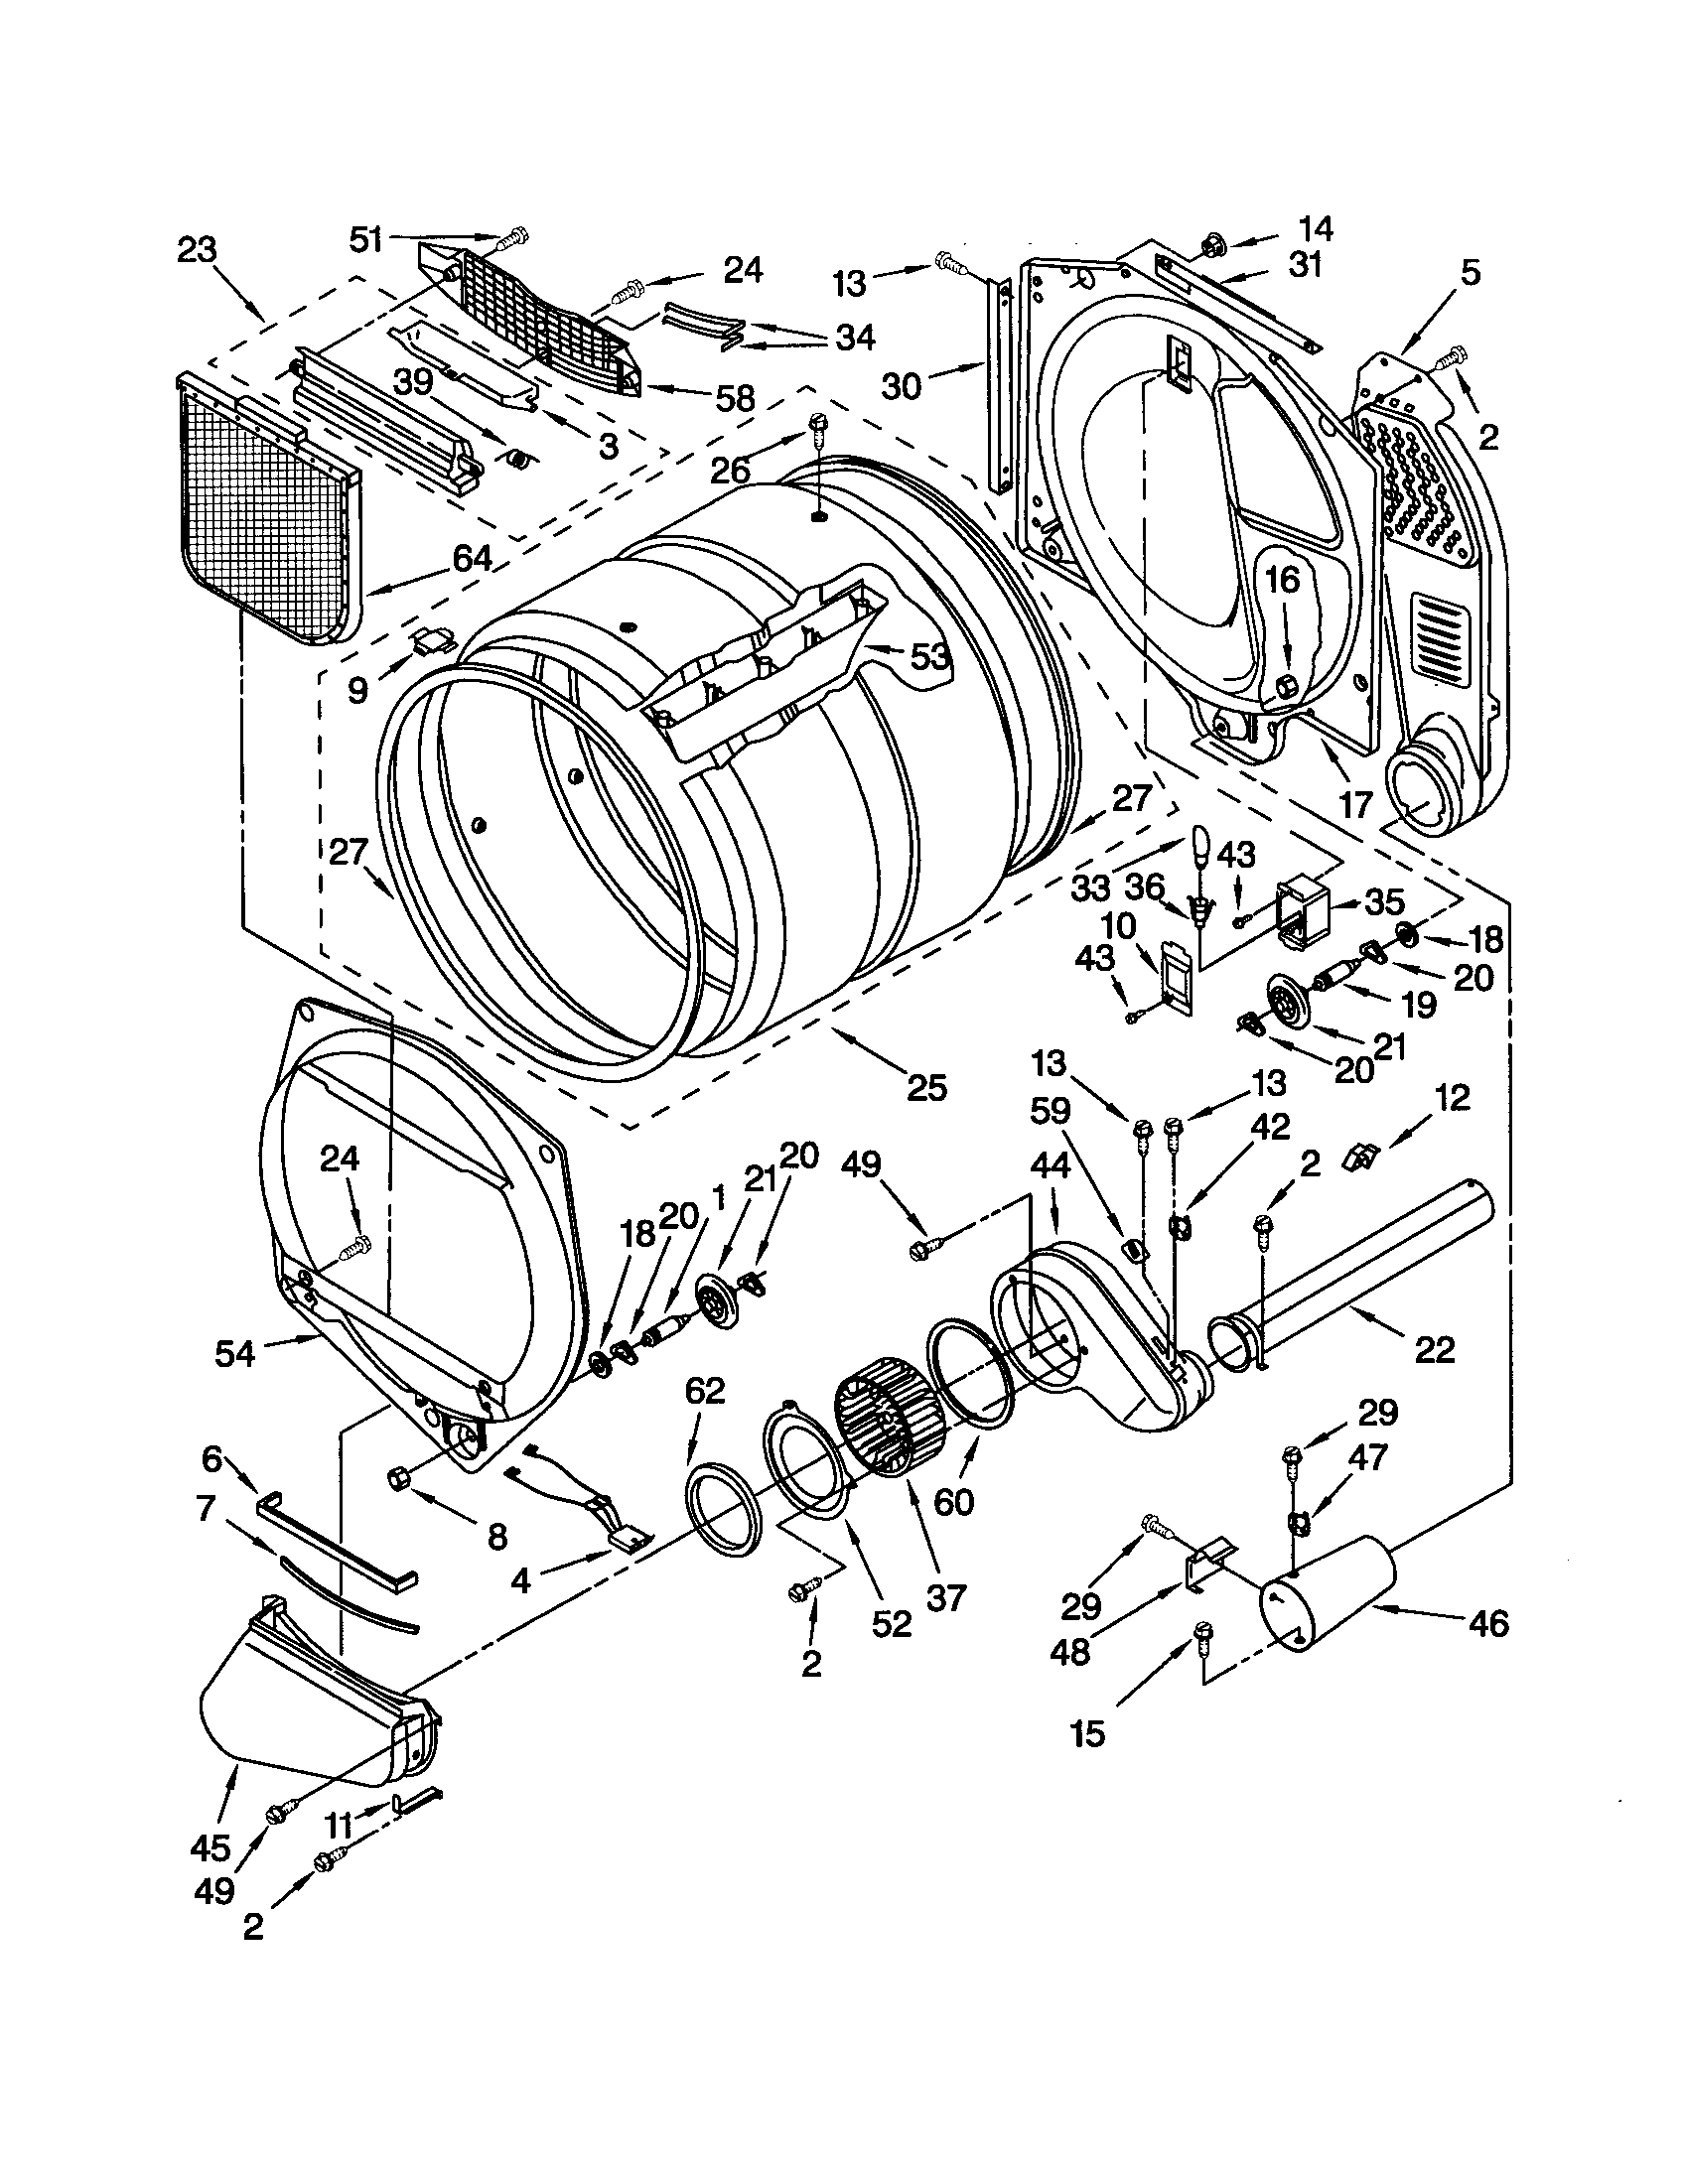 small resolution of fuse location moreover whirlpool dryer belt diagram on kenmore diagram further kenmore dryer fuse location moreover whirlpool dryer